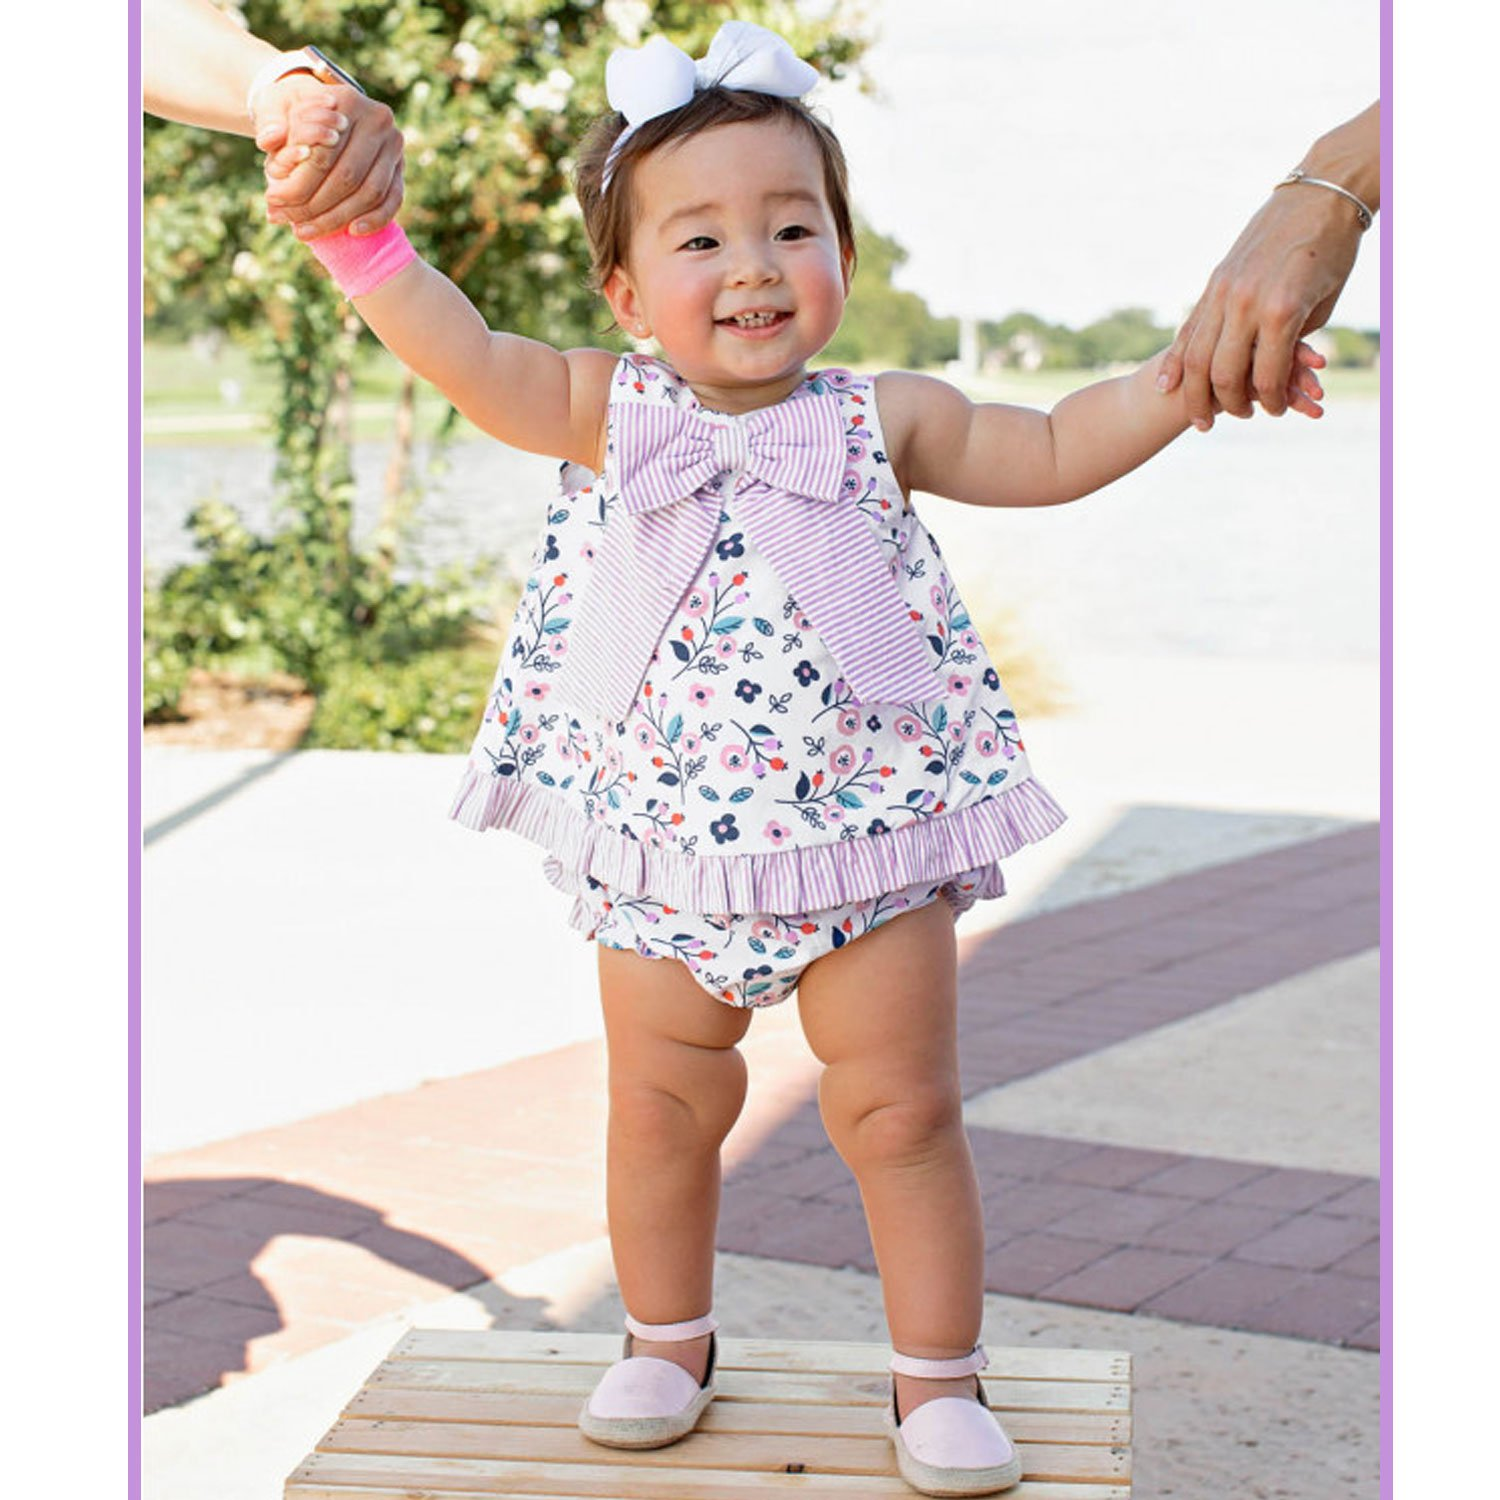 Ruffle butts life is rosy swing top and diaper cover set for baby girls